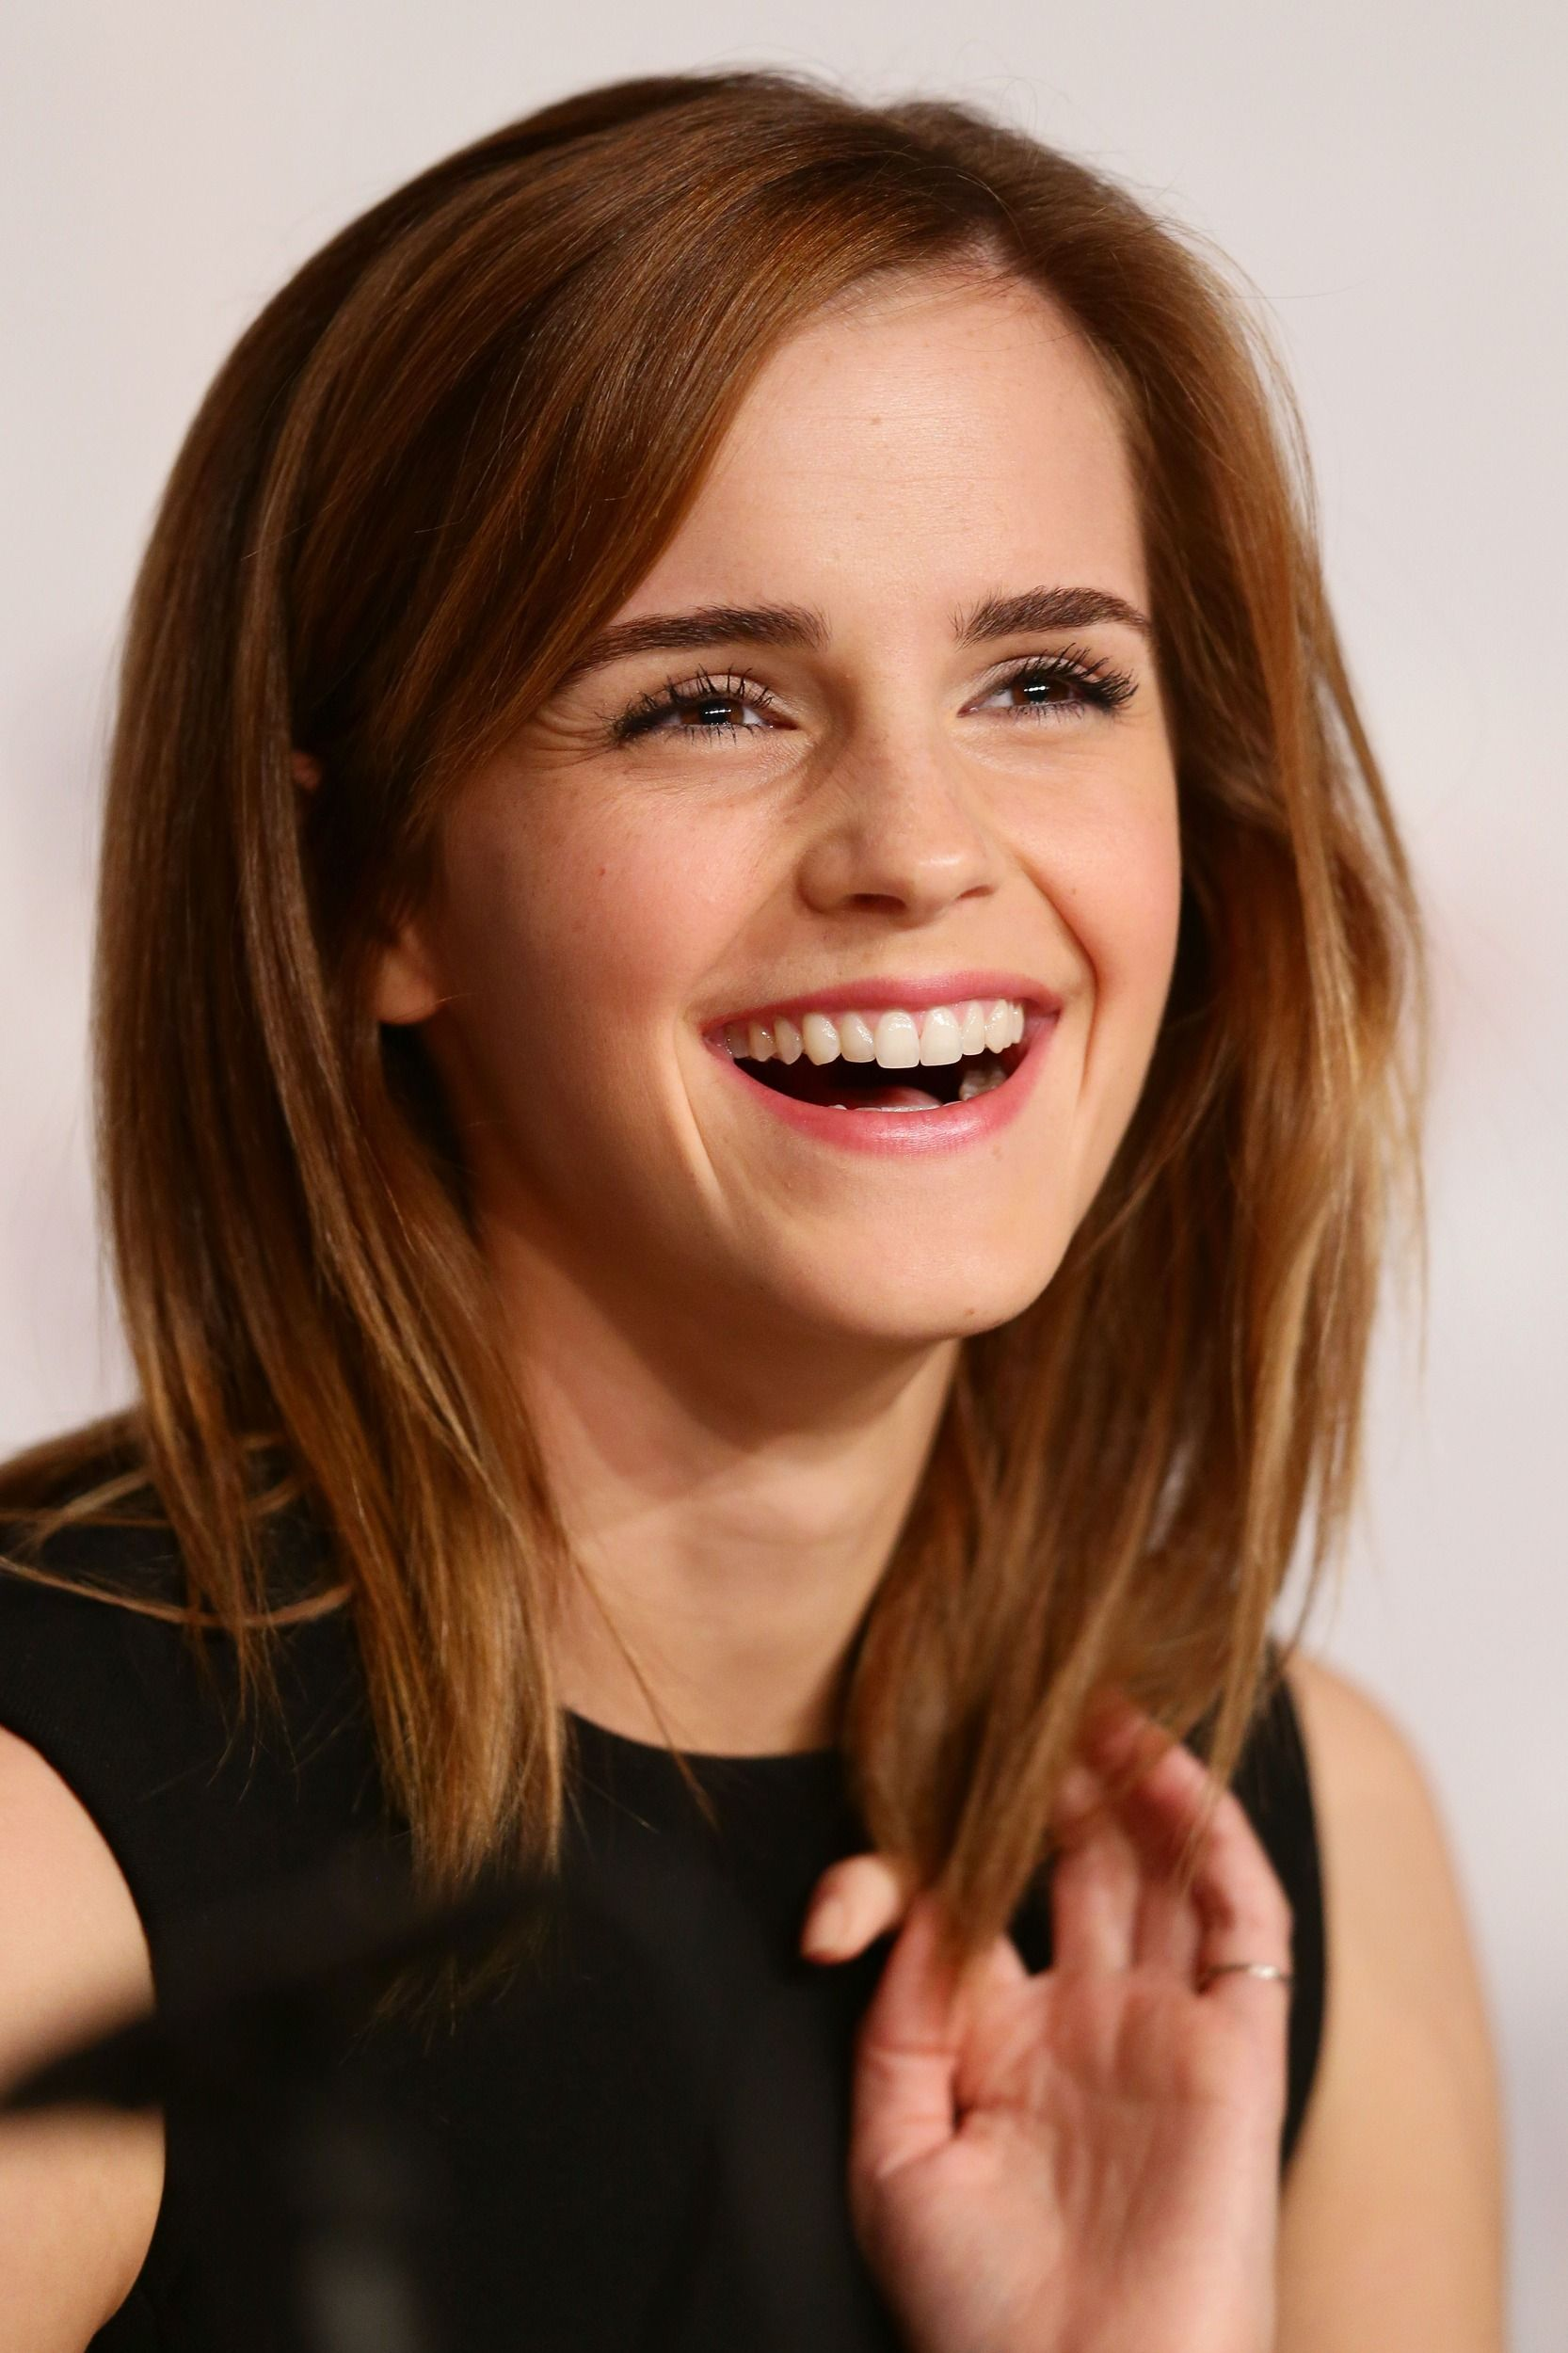 Google themes emma watson - Emma Watson Photos Photos Actress Emma Watson Attends The Bling Ring Press Conference During The Annual Cannes Film Festival At Palais Des Festival On